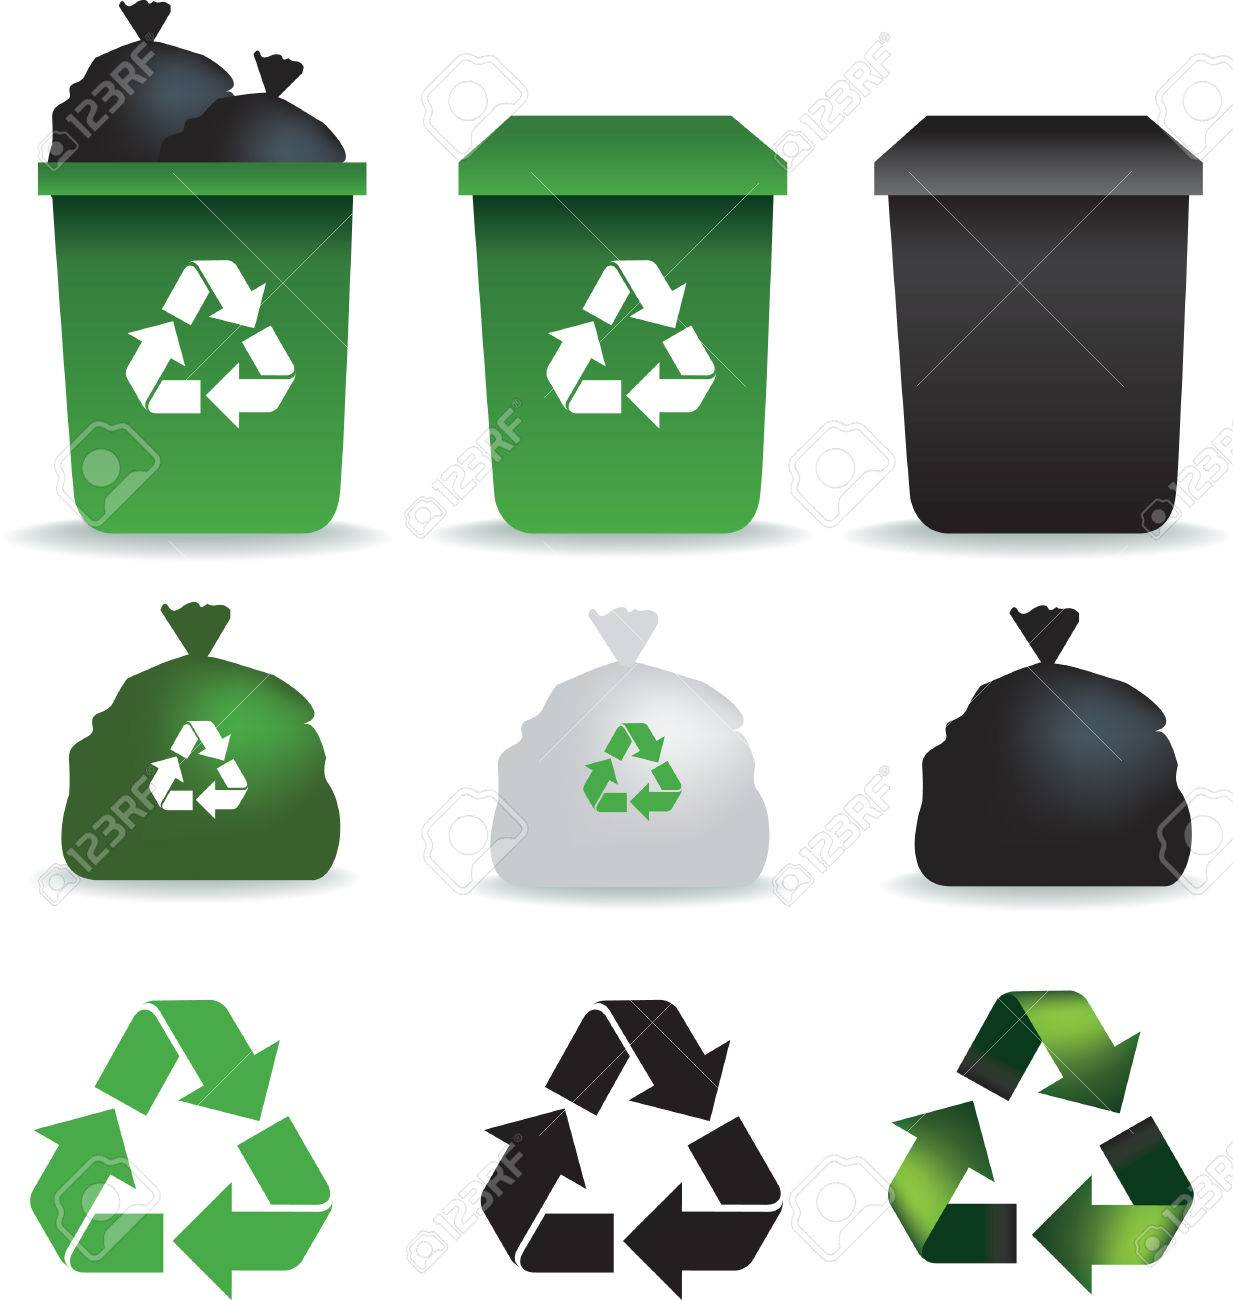 Illustration of a set of rubbish bins and recycle symbols royalty illustration of a set of rubbish bins and recycle symbols stock vector 4773613 biocorpaavc